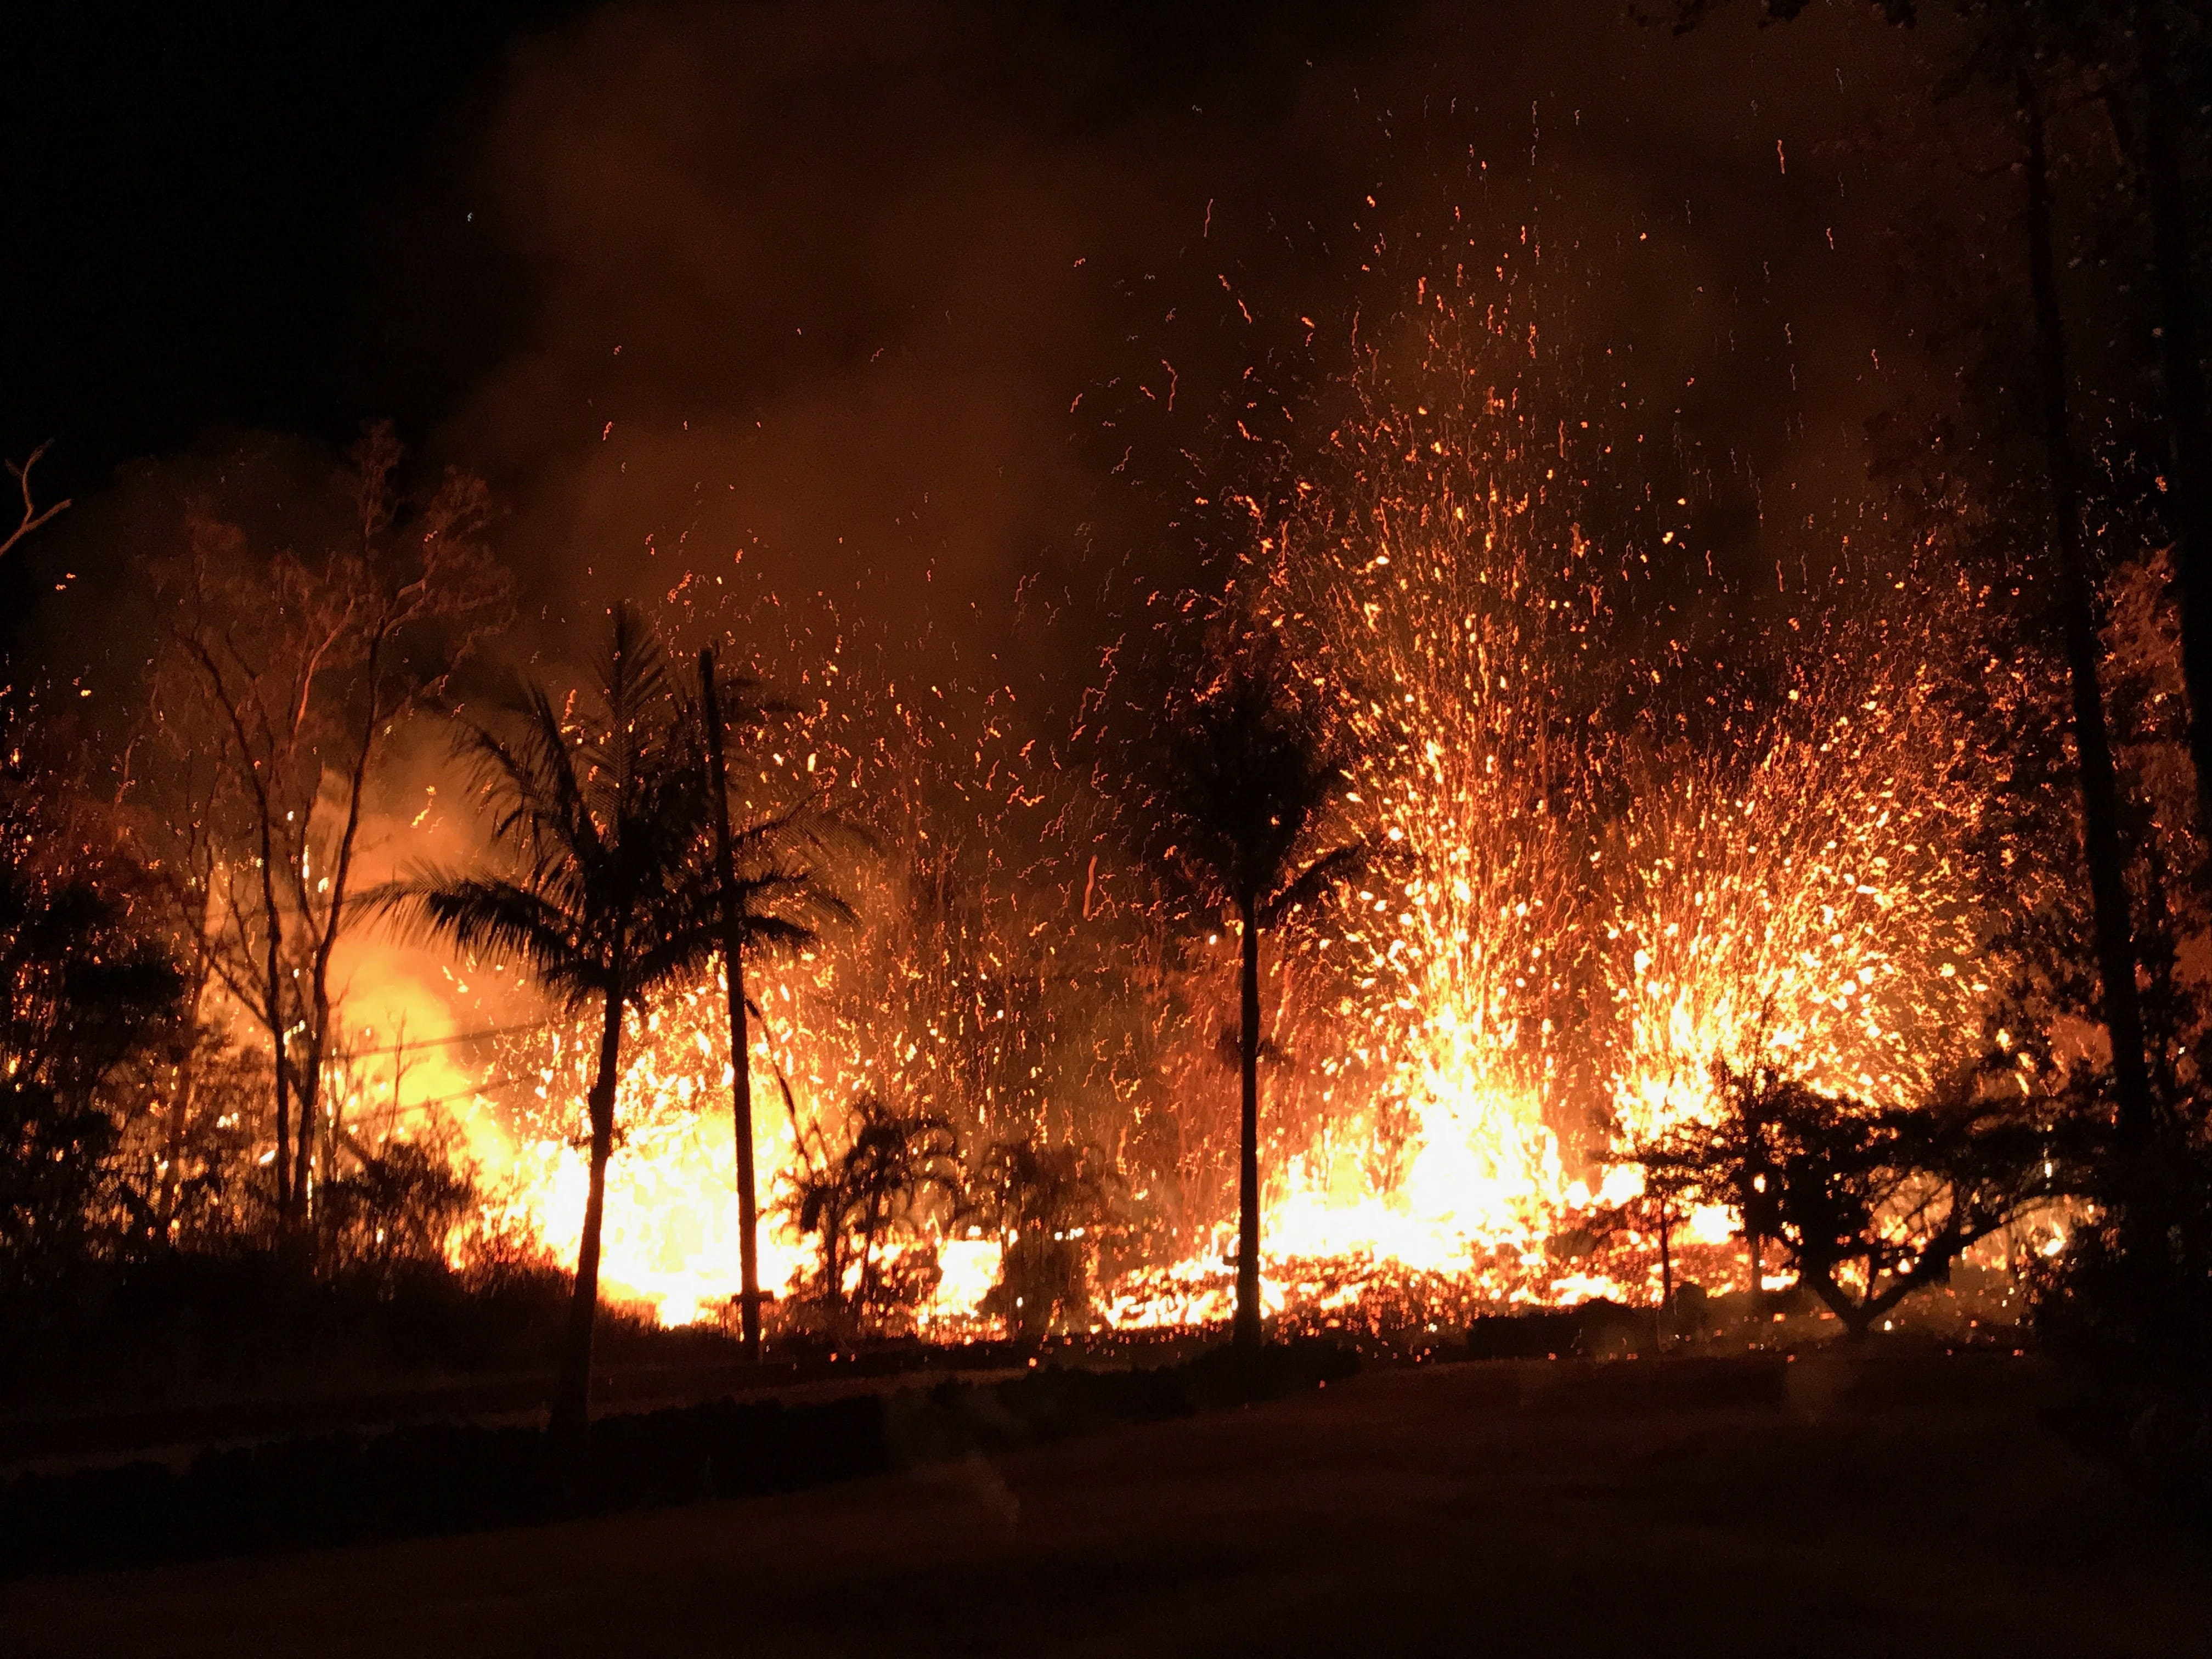 eruptions from Kīlauea volcano place the Hawaiian island on red alert